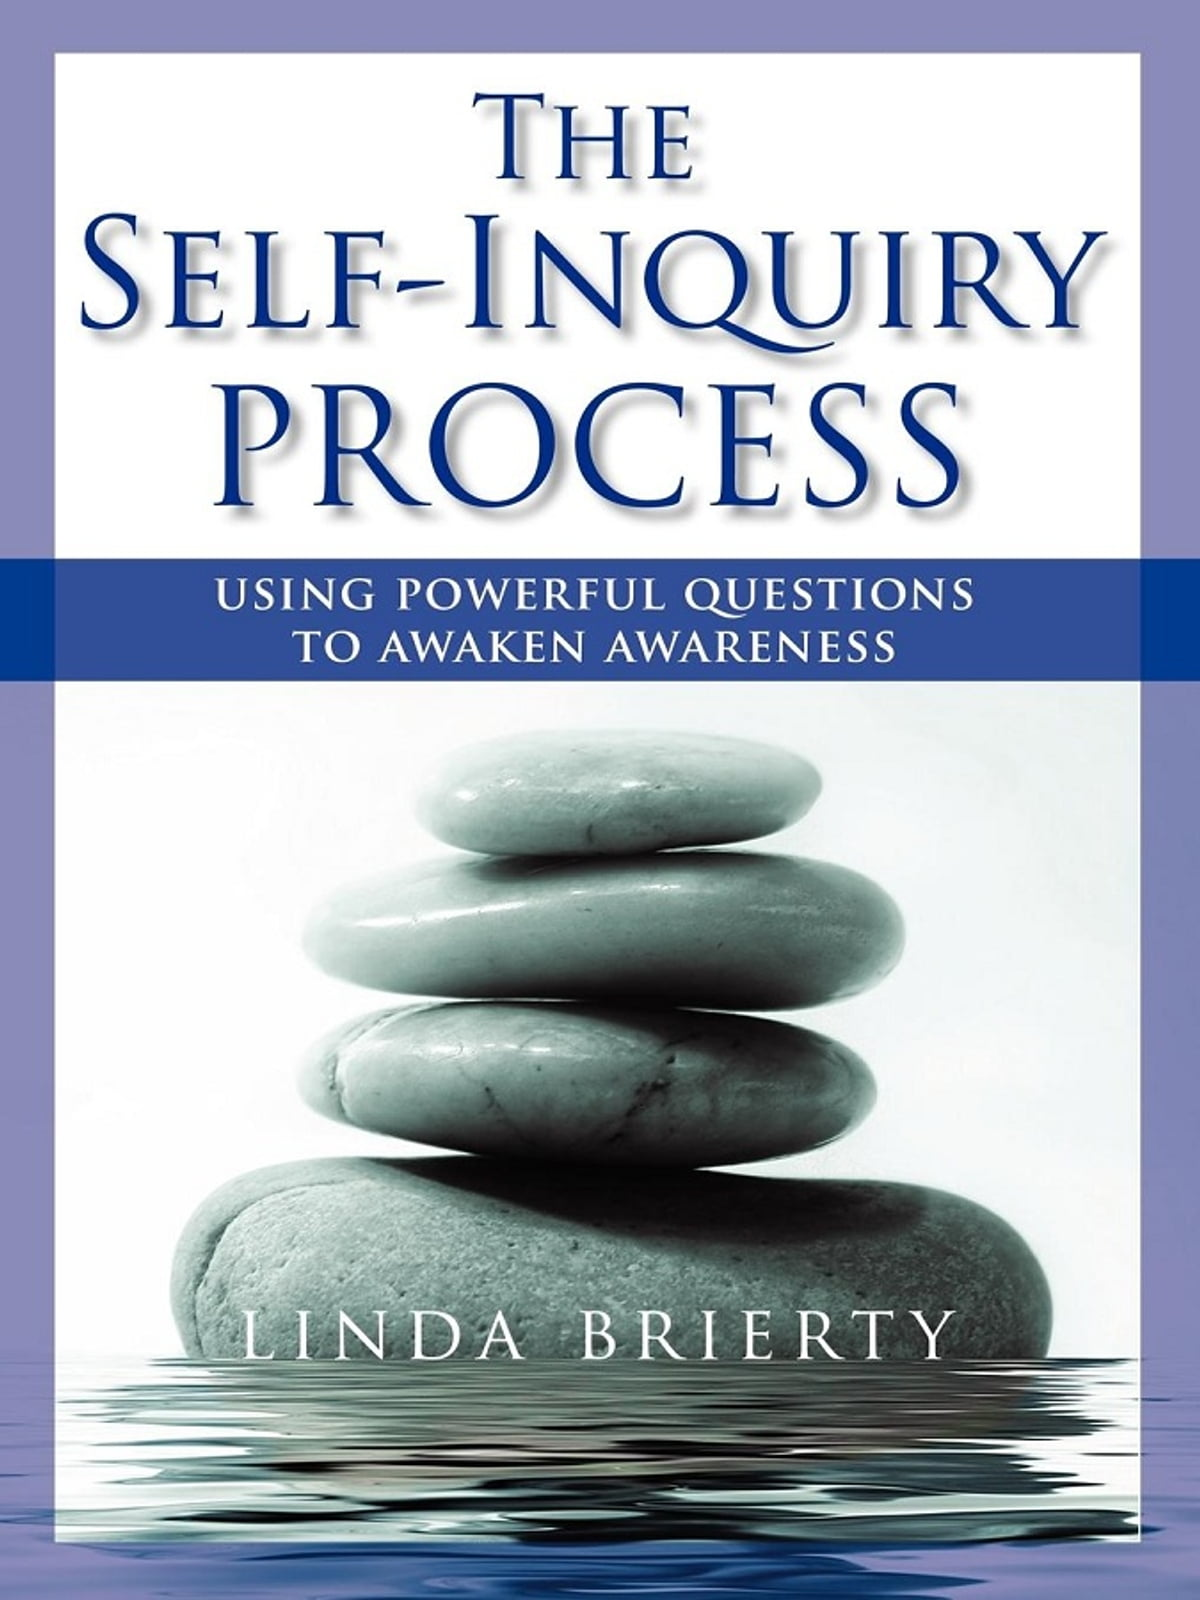 The Selfinquiry Process Ebook By Linda Brierty  9781616405915  Rakuten  Kobo